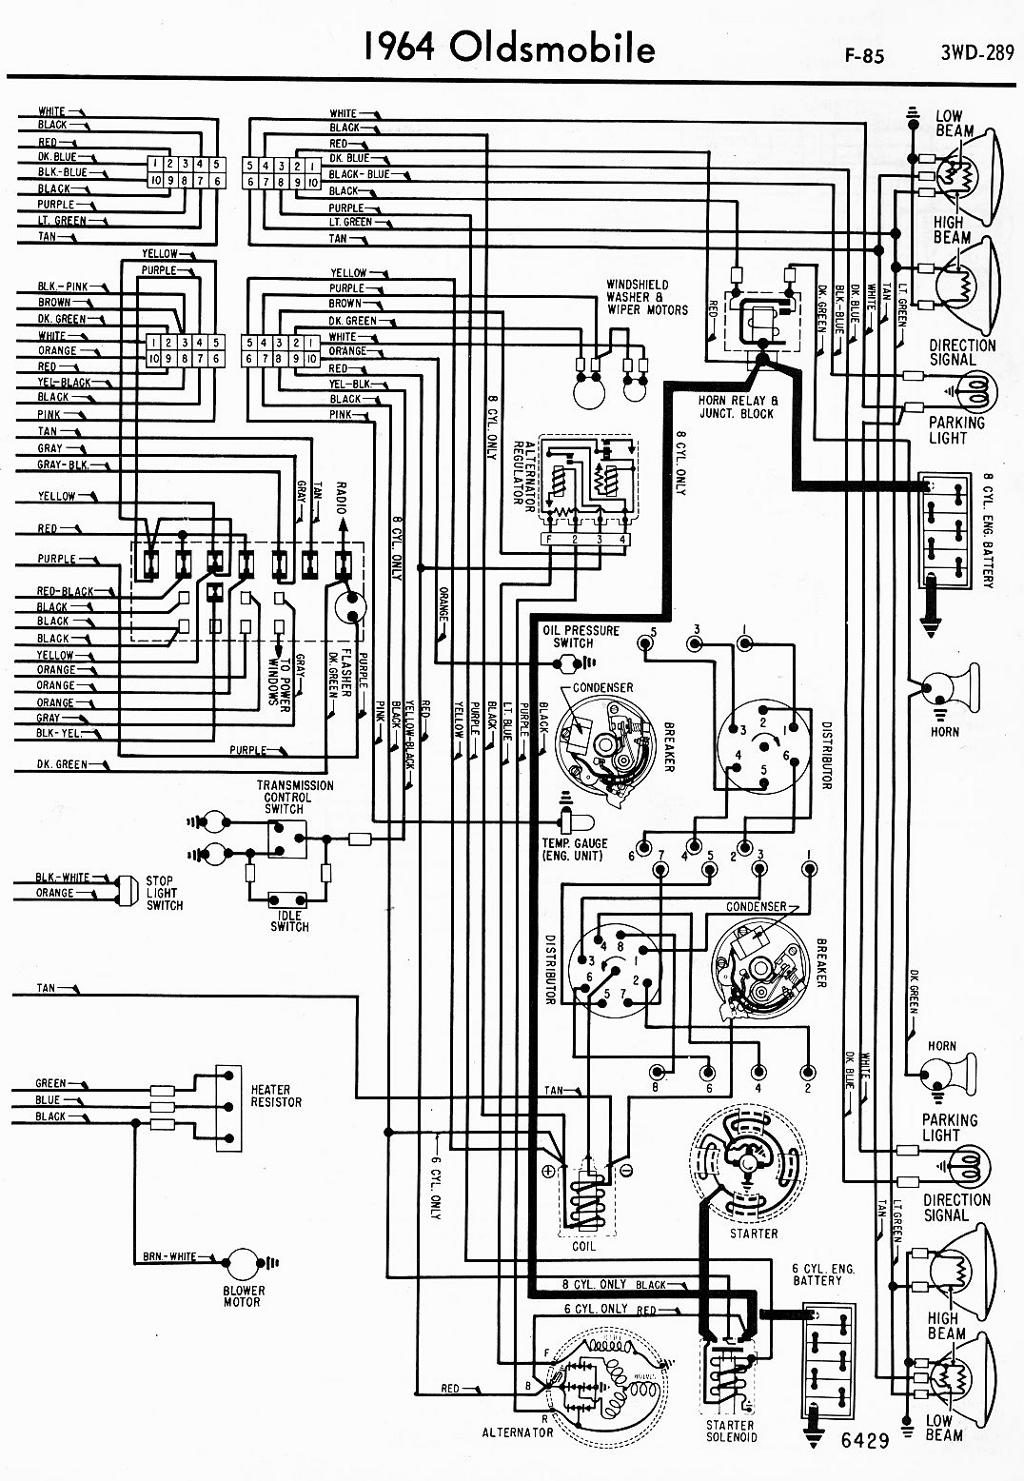 1965 olds 442 wiring diagram explained wiring diagrams 1971 oldsmobile cutlass wiring diagram 1967 oldsmobile [ 1024 x 1481 Pixel ]